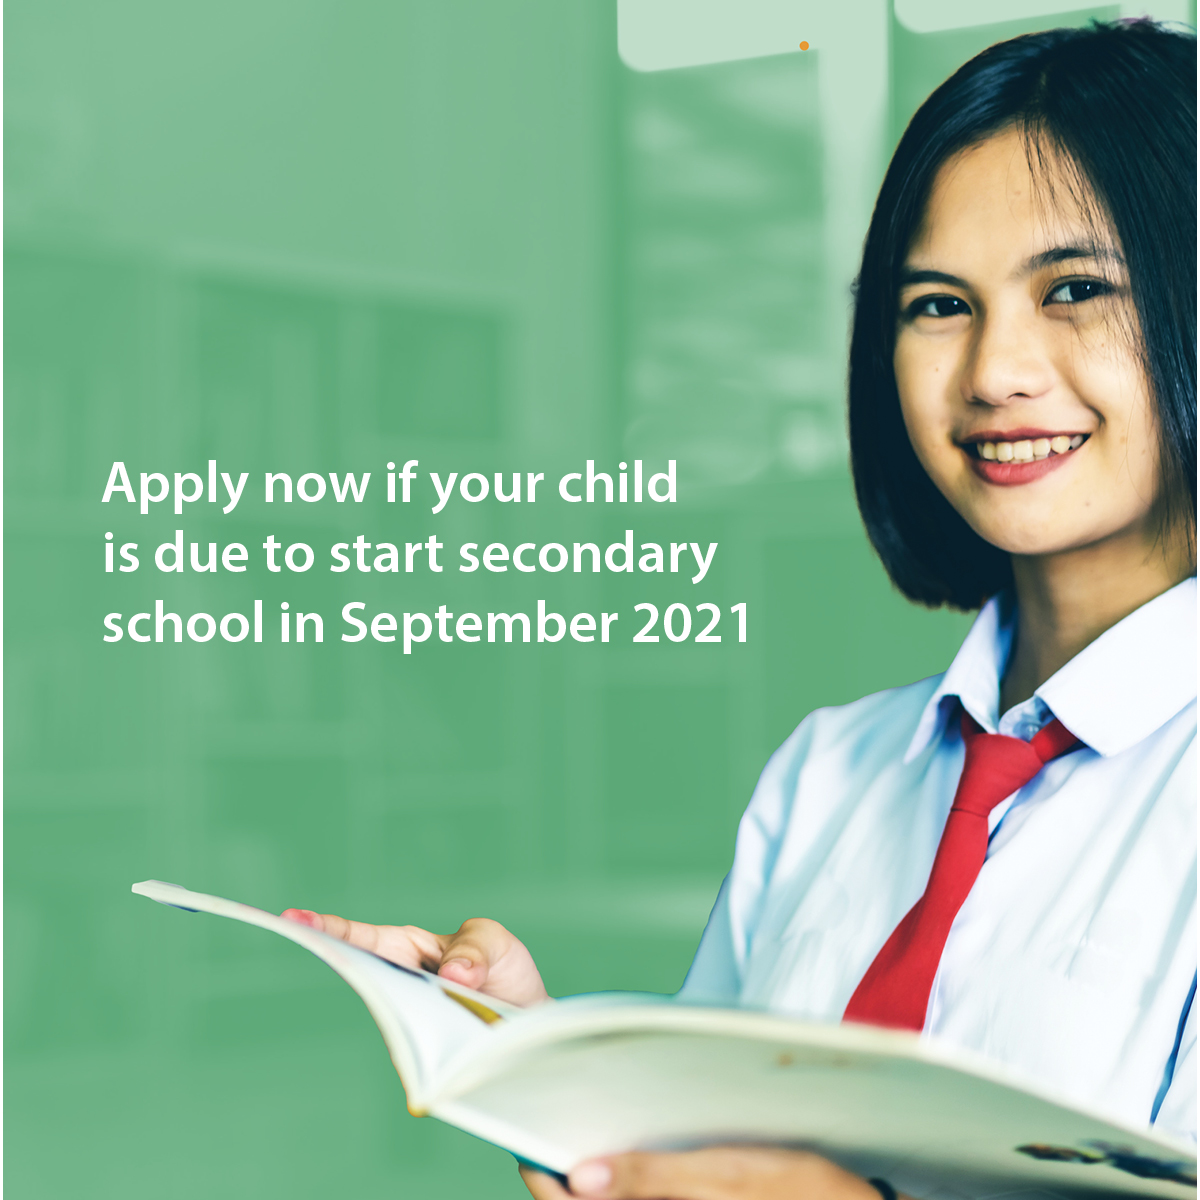 Secondary School Applications are now open